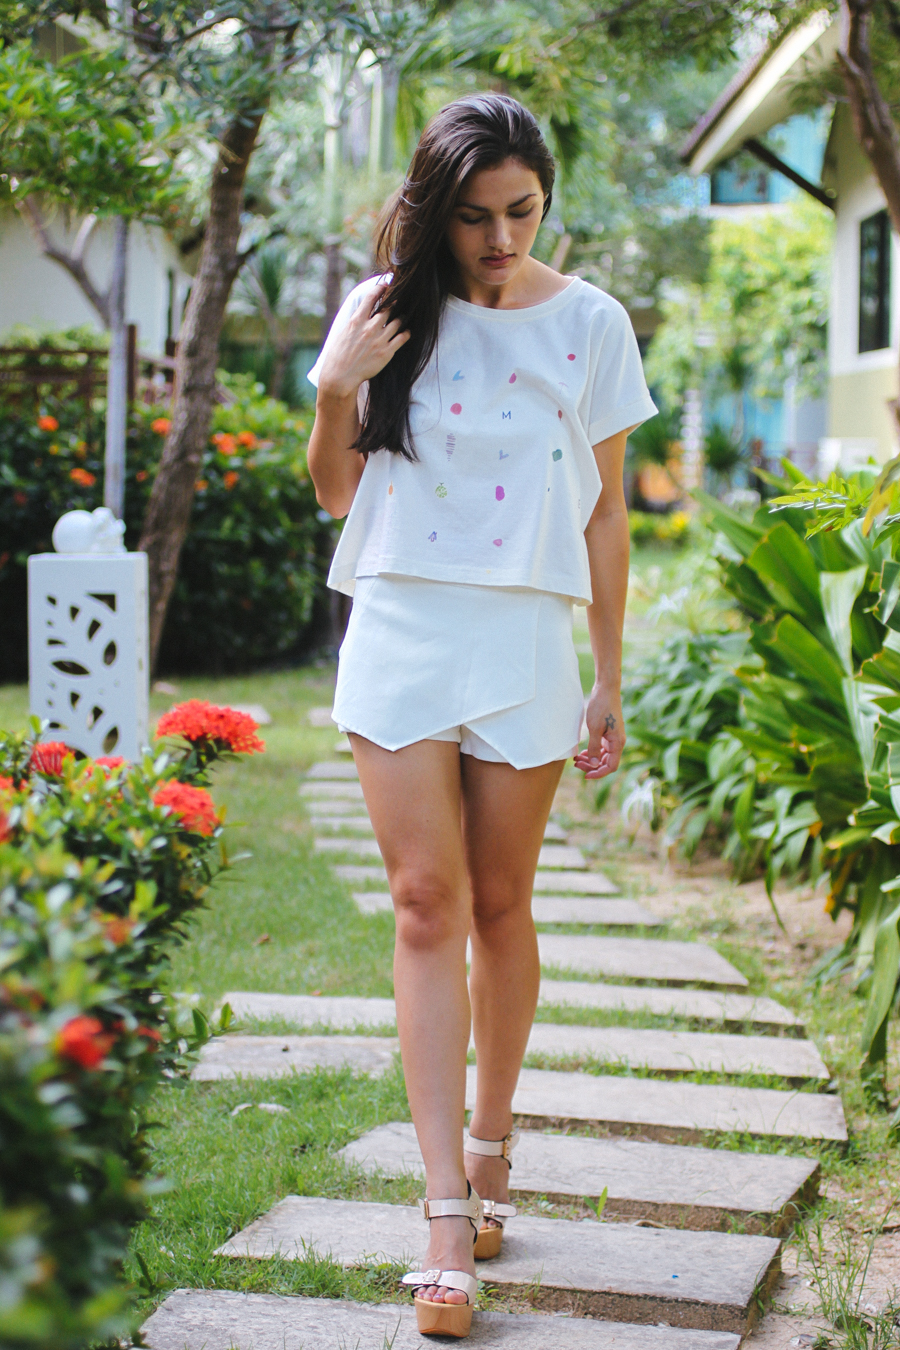 Thai fashion blogger Shannon Valle.